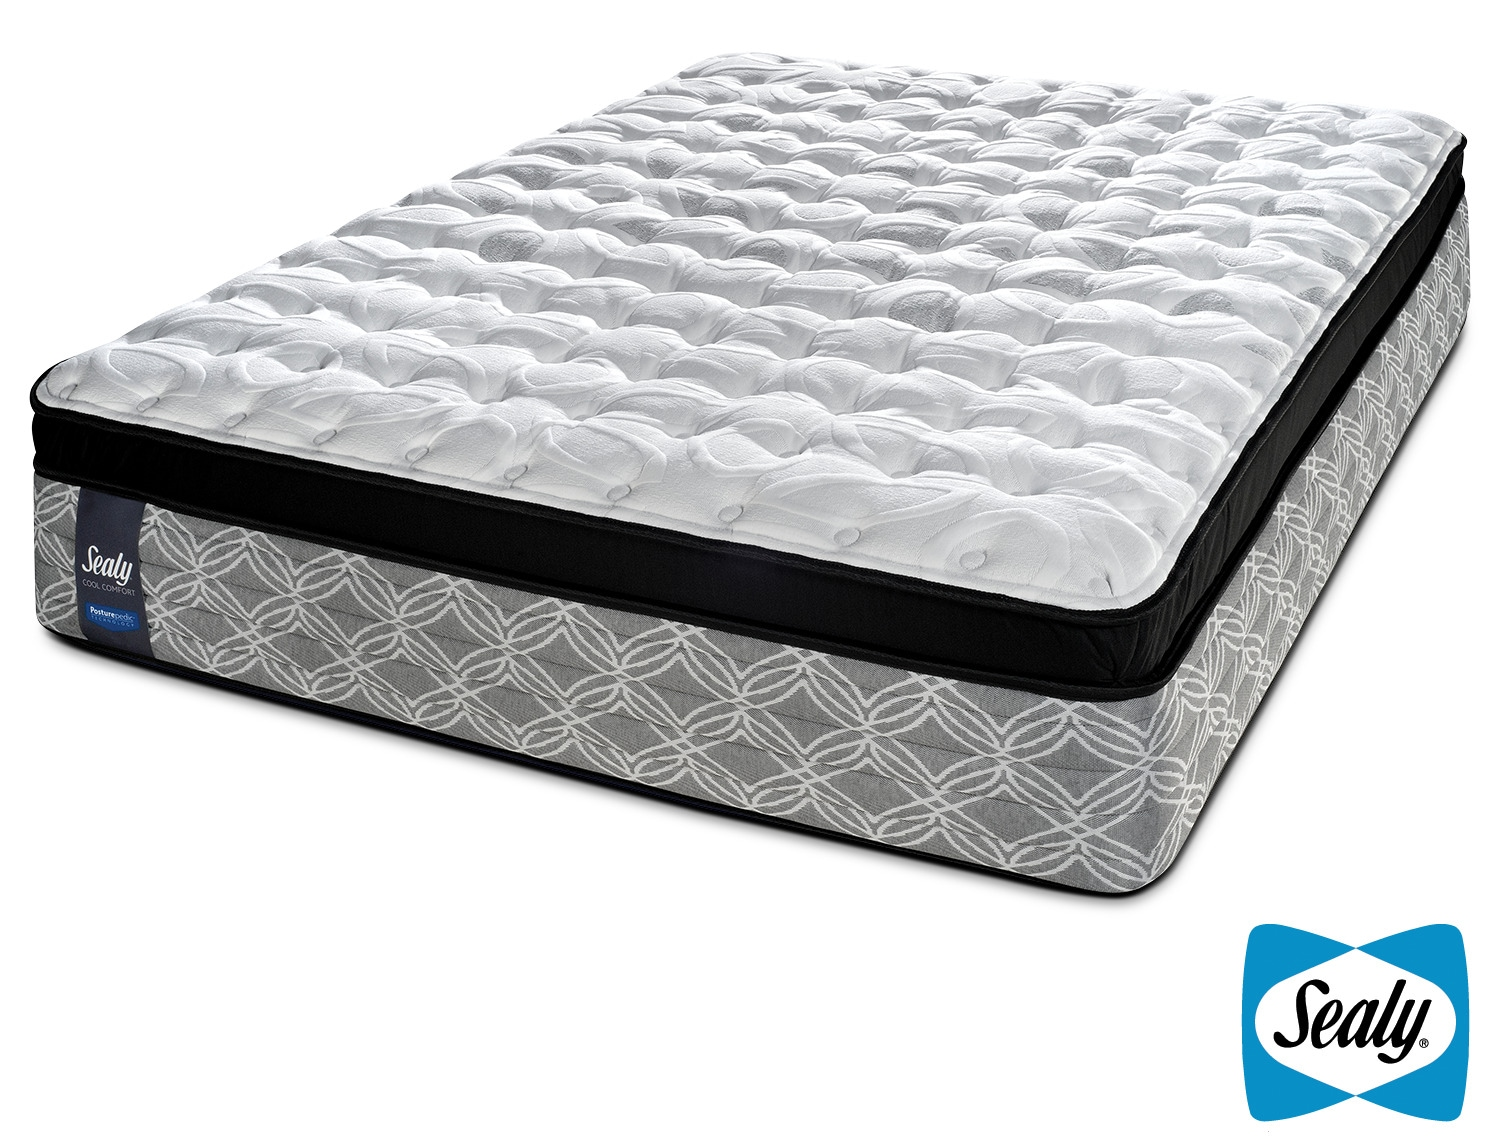 Sealy Sundown Firm Queen Mattress